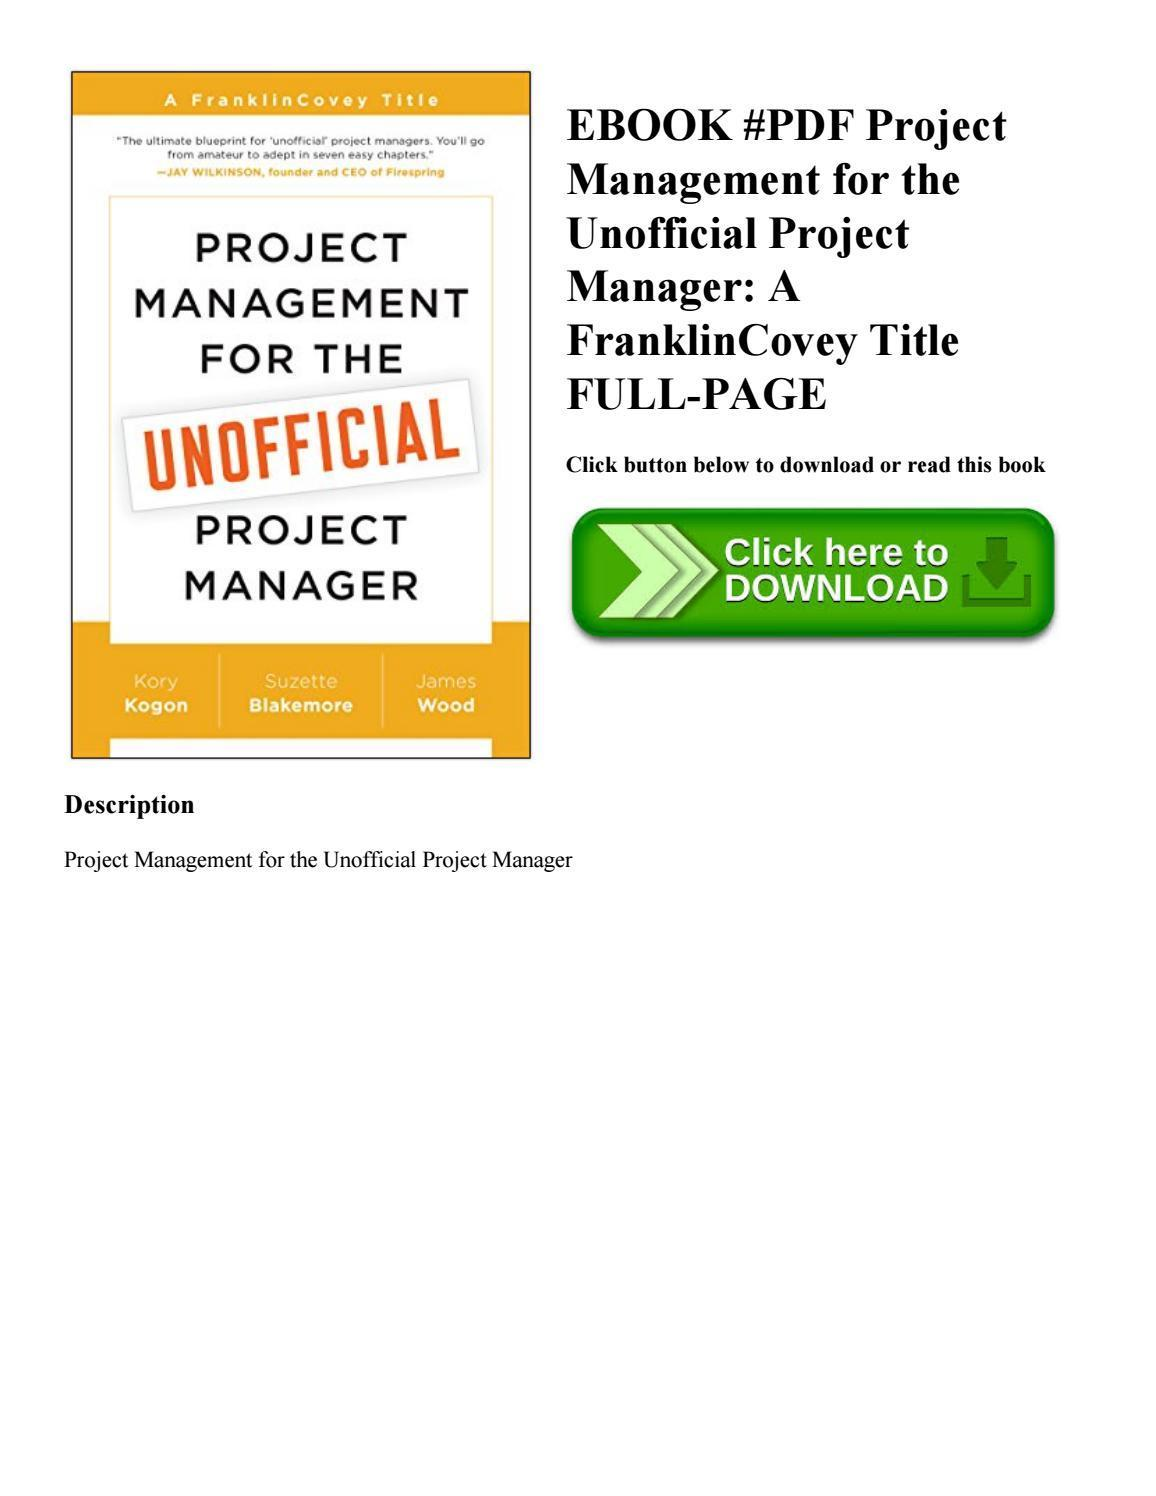 Franklin Covey Project Management Template